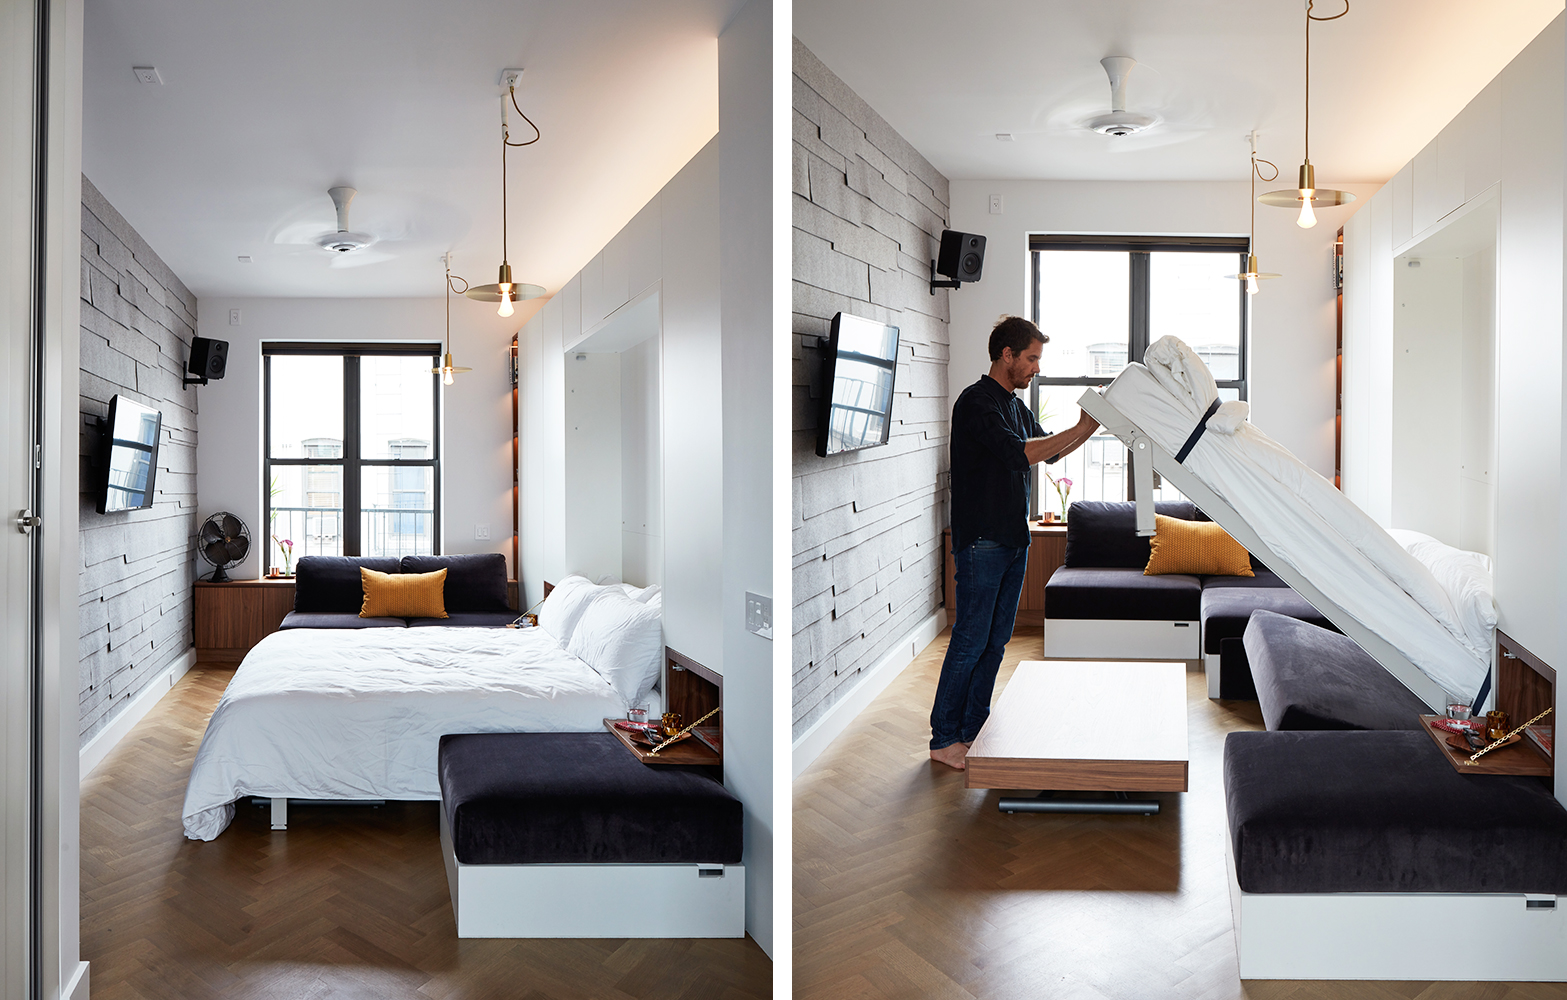 Micro Living Apartment Small Living Advocate Graham Hill Lists His 350 Square